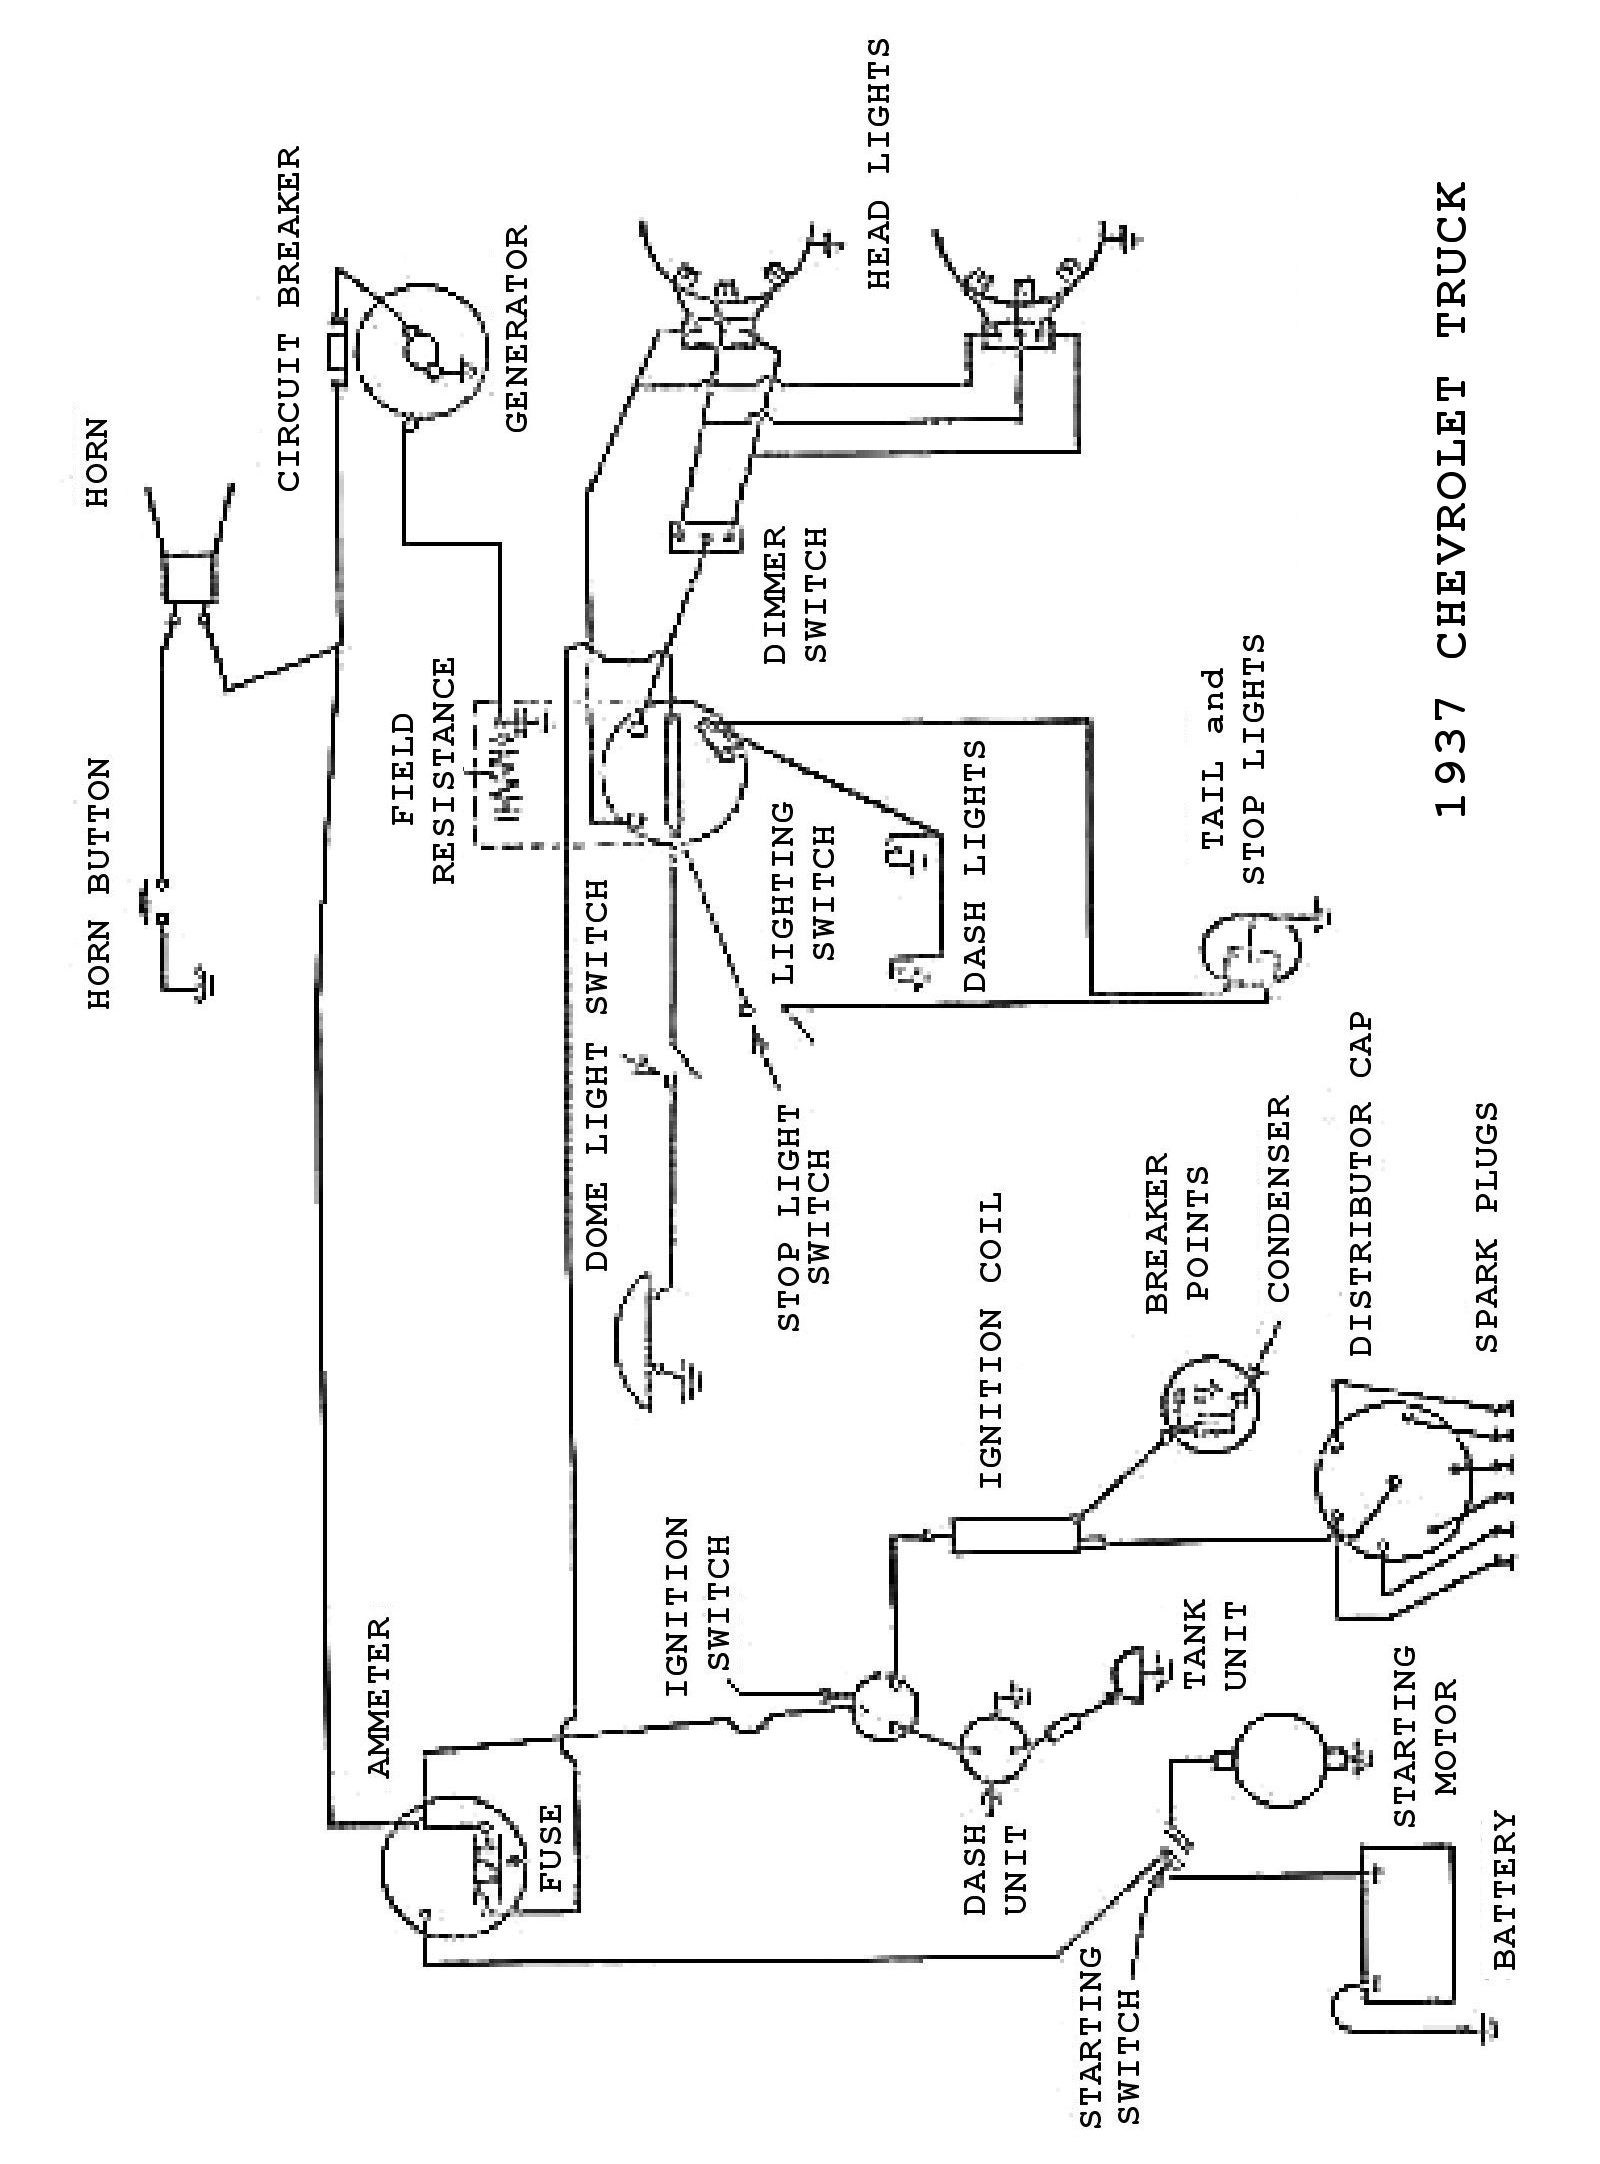 chevy wiring diagrams rh chevy oldcarmanualproject com Ford F-250 Wiring Diagram Ford Ignition System Wiring Diagram